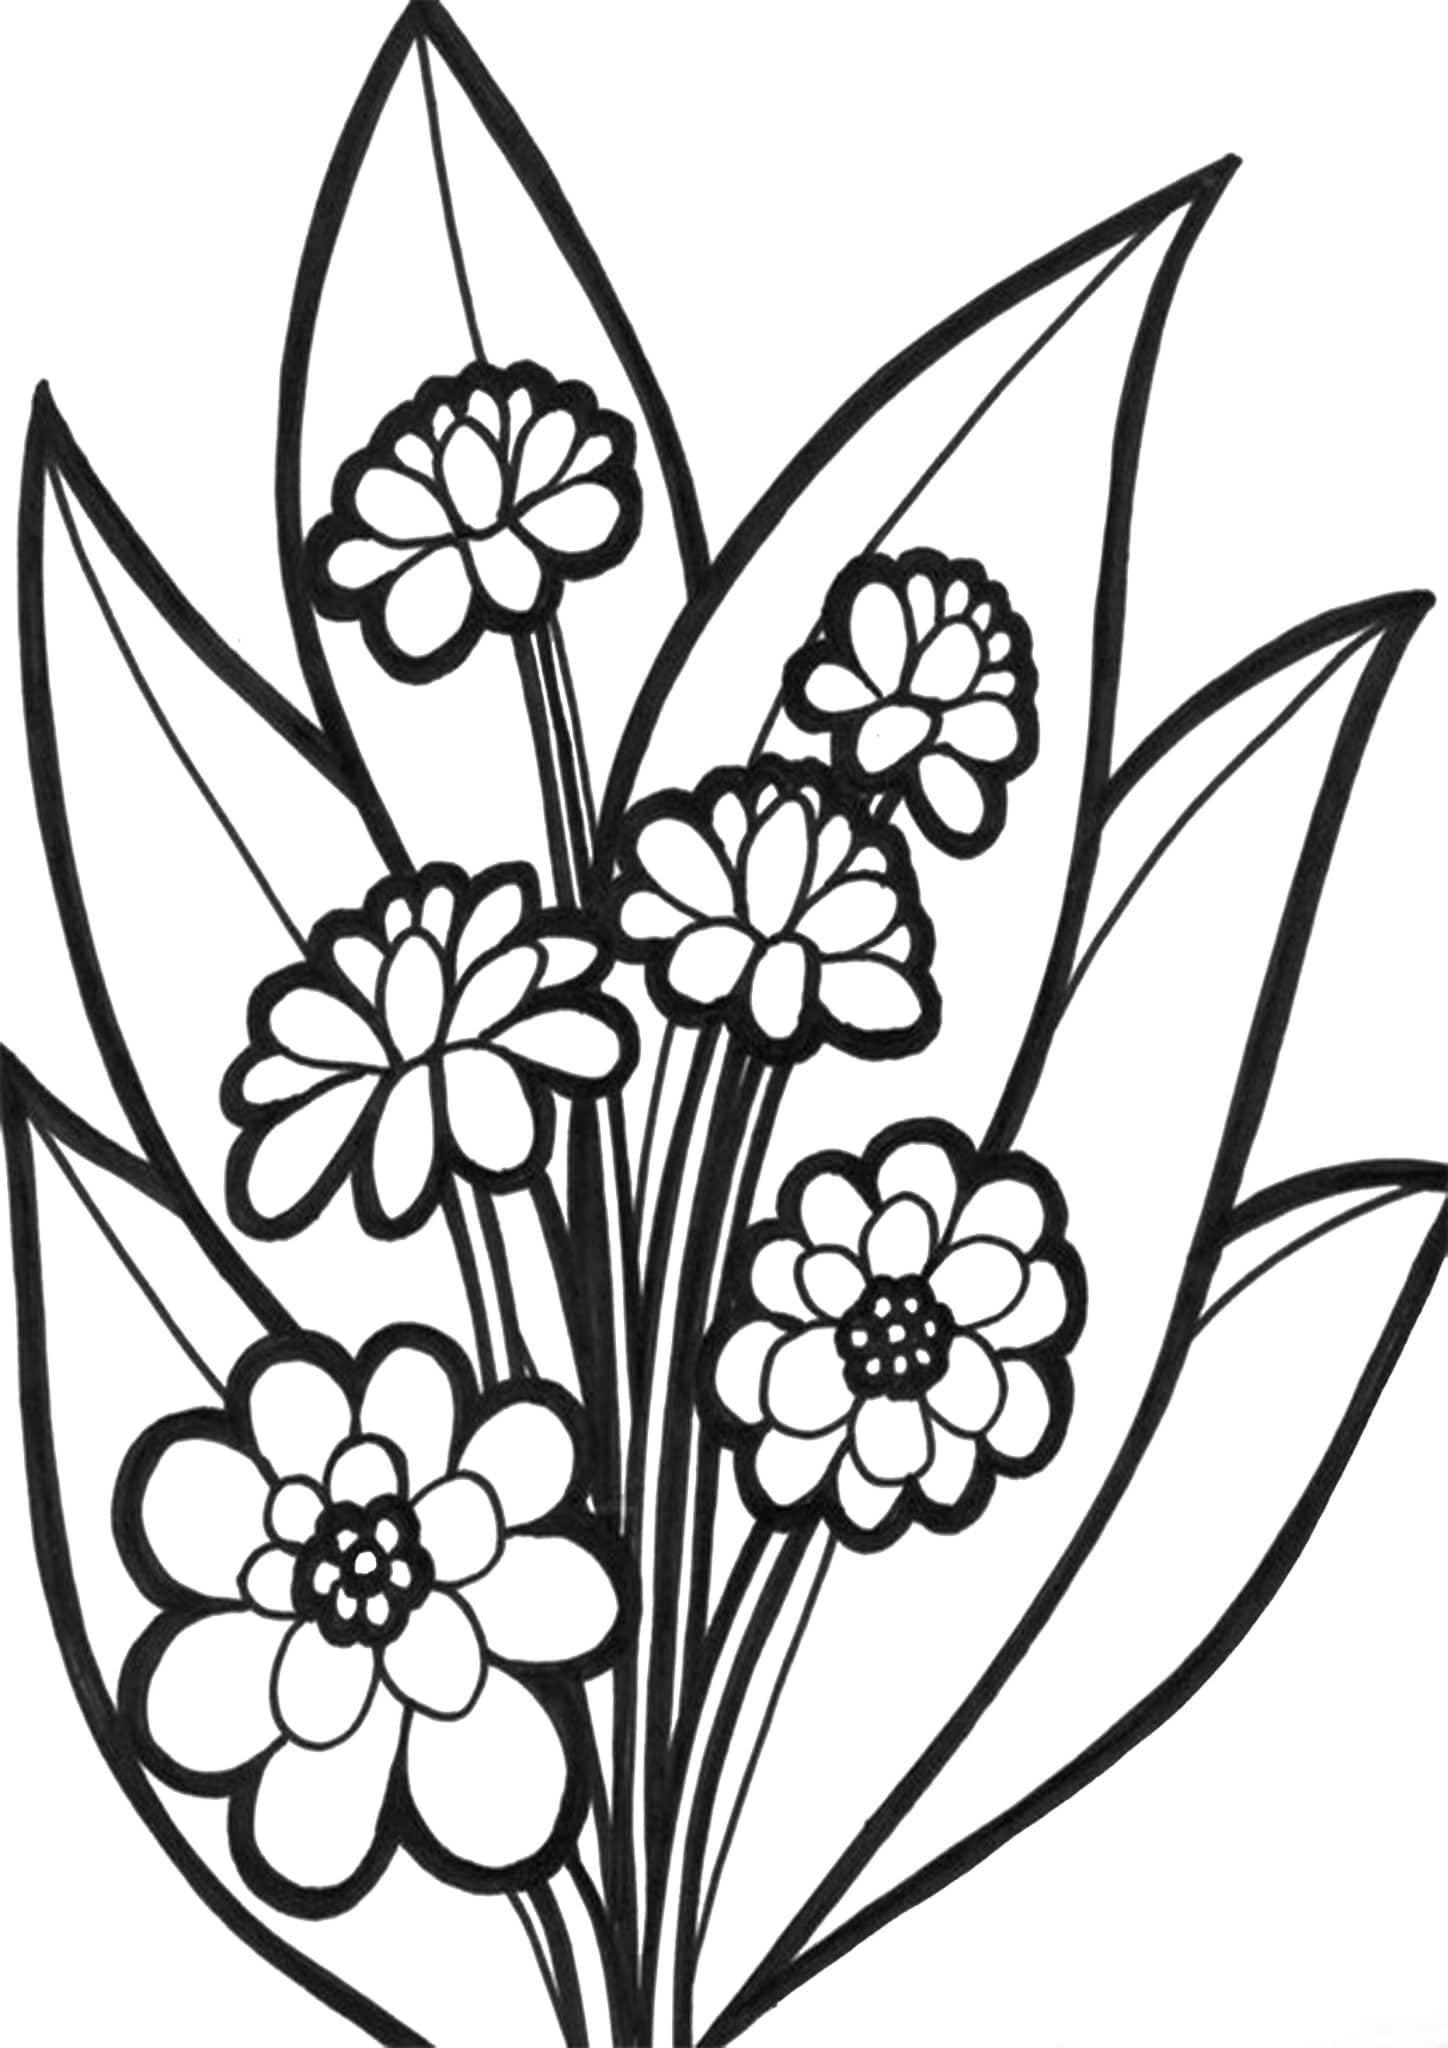 pictures of flowers to color free easy to print flower coloring pages tulamama flowers to pictures of color 1 1